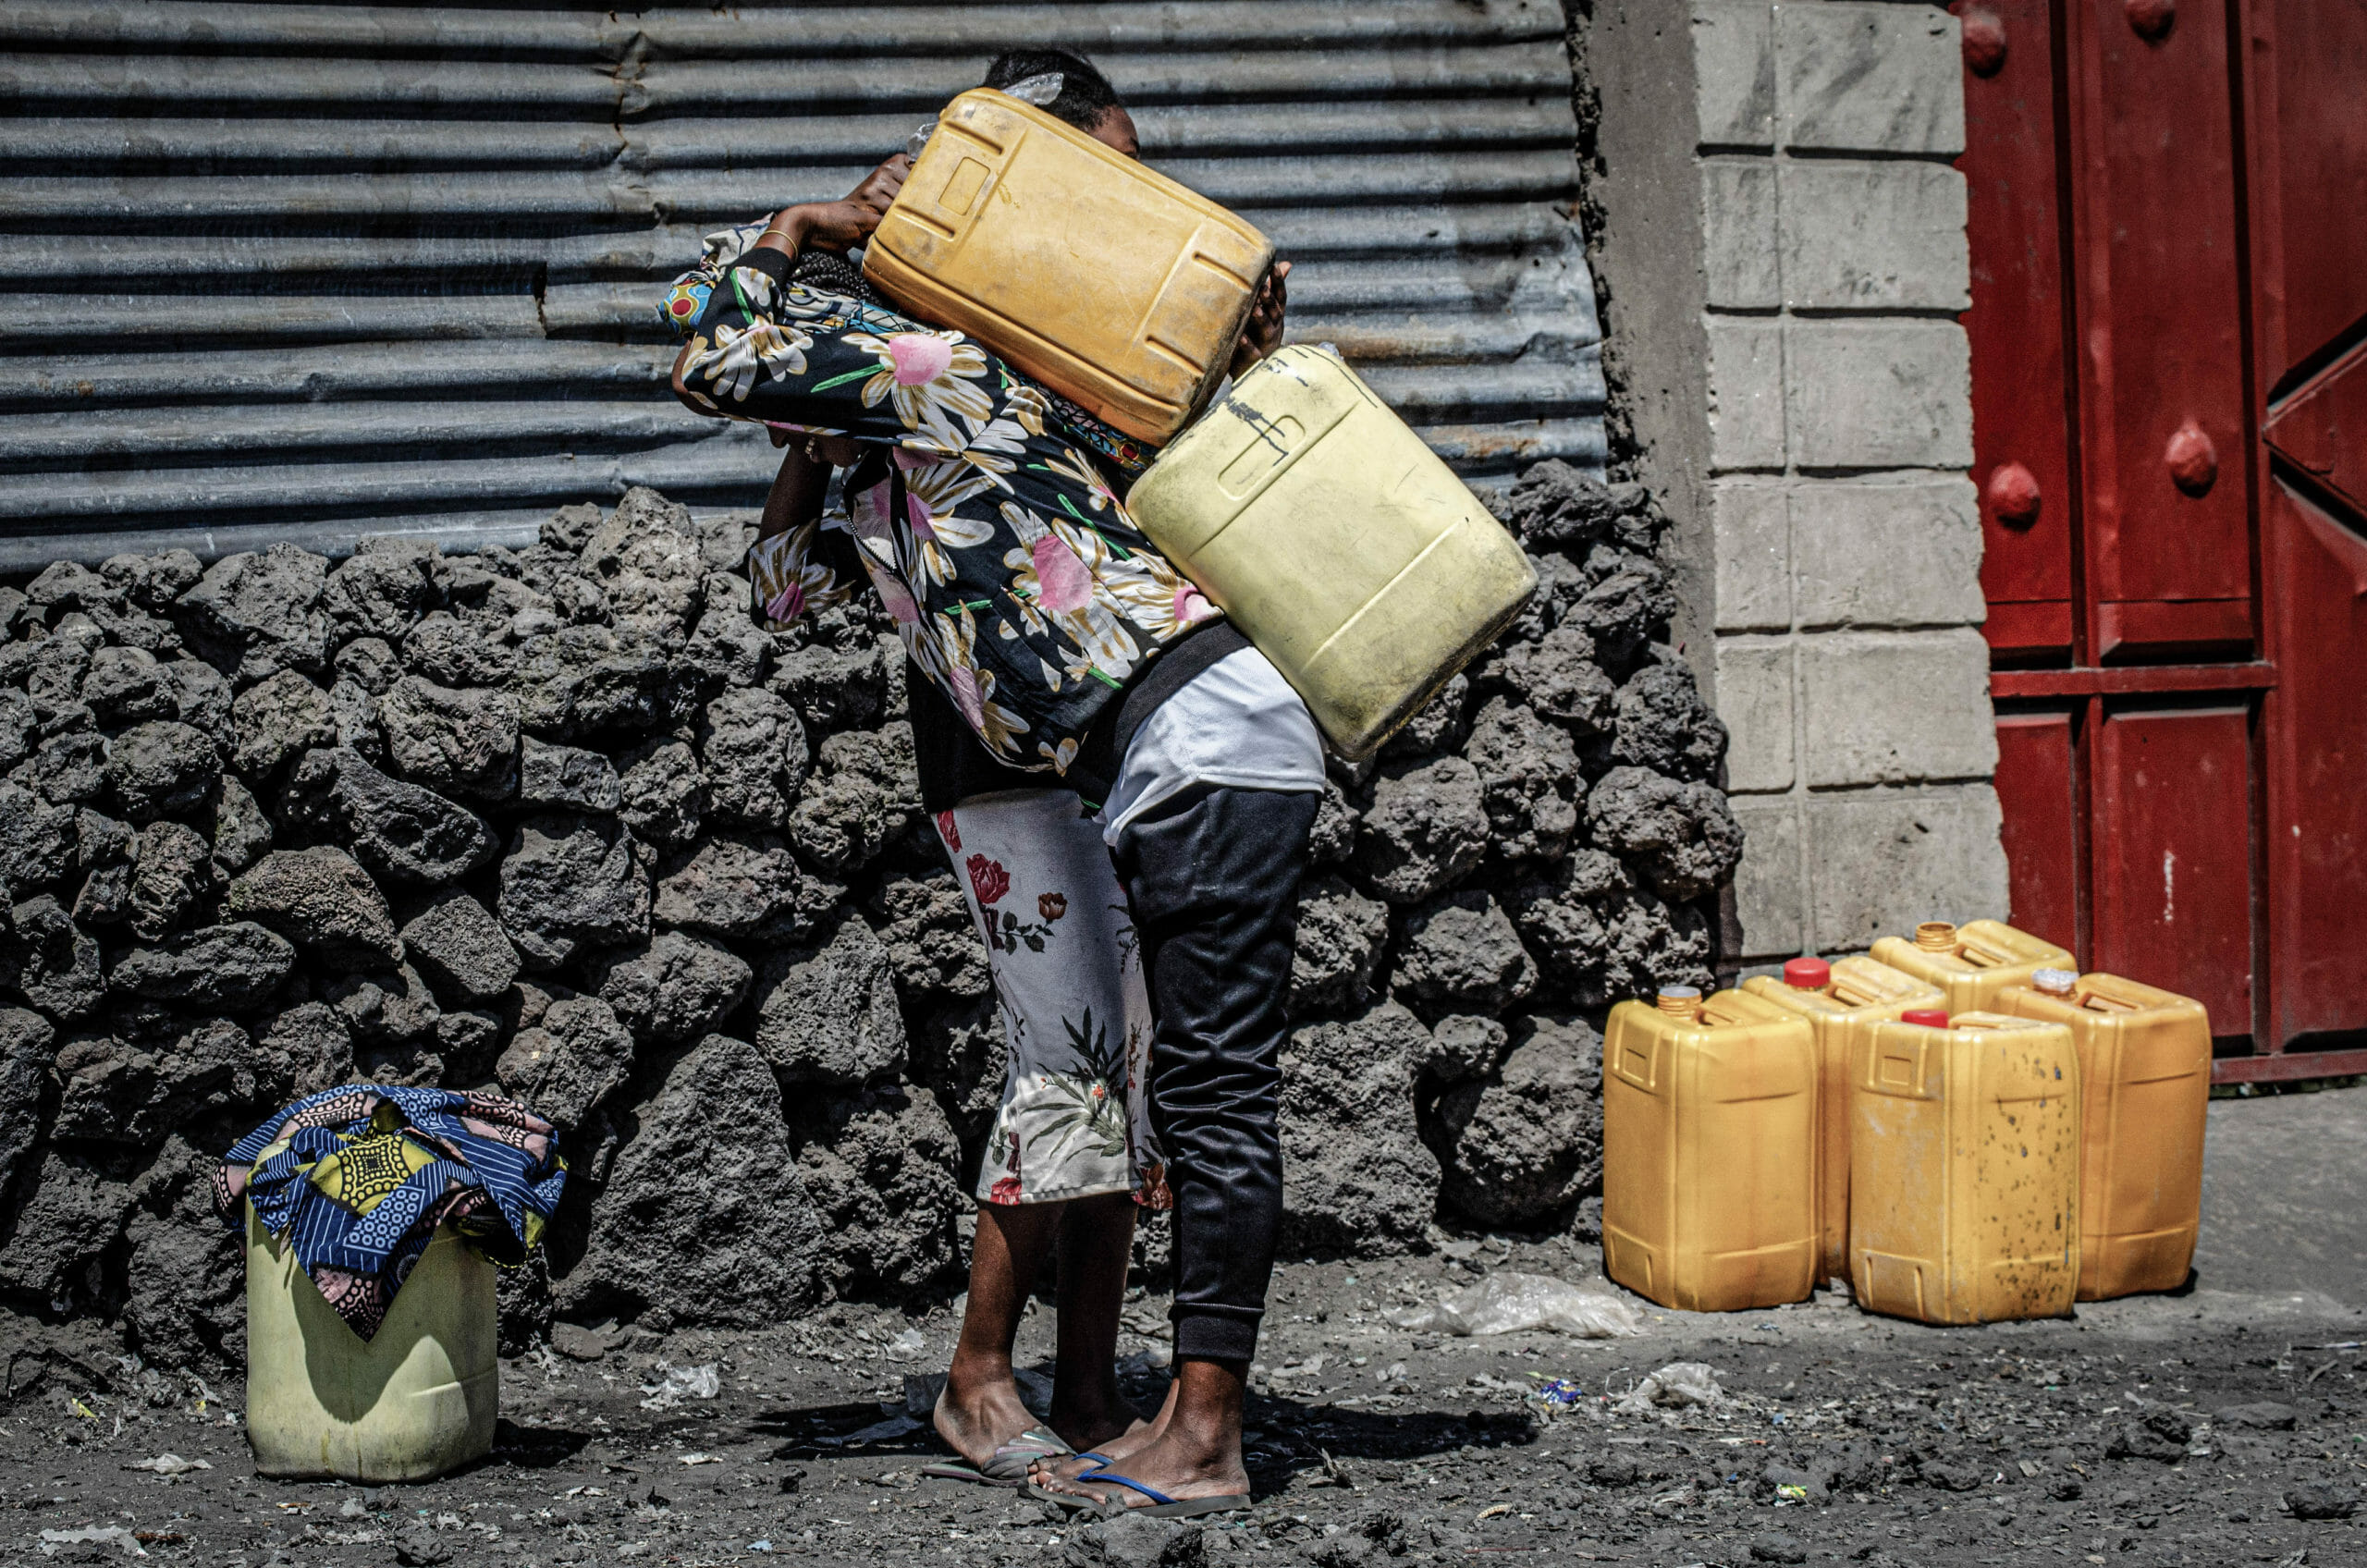 Goma, Democratic Republic of Congo, May 2020. A woman carries water containers in Goma, the capital of eastern Congo's North Kivu Province last month.© Arlette Bashizi for Fondation Carmignac